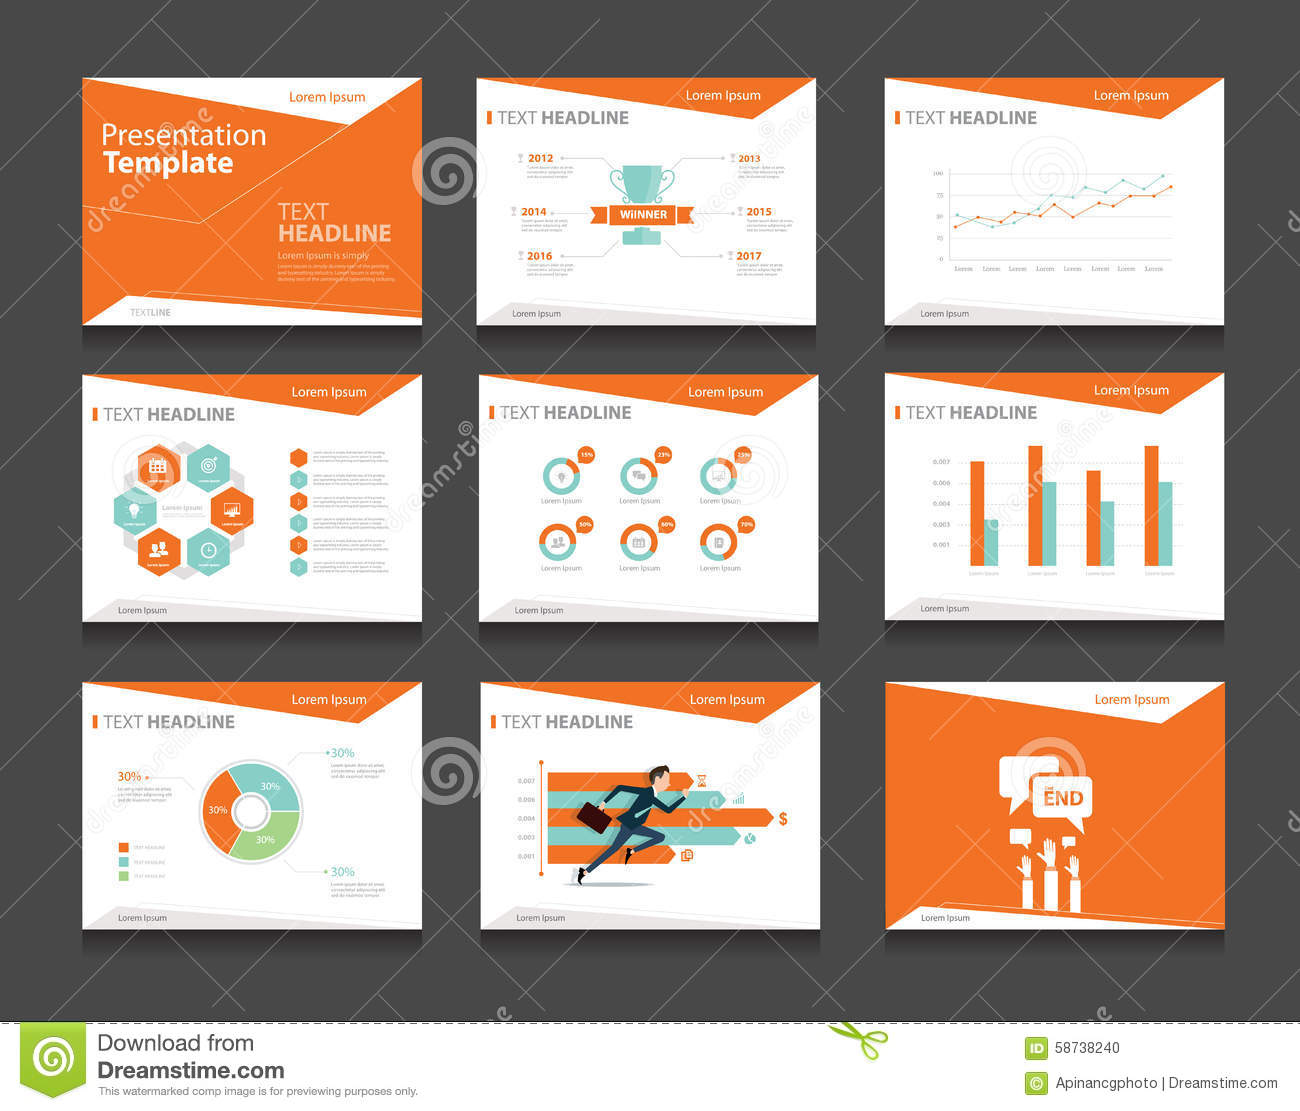 Powerpoint templates for corporate presentations yolarnetonic powerpoint templates for corporate presentations flashek Images